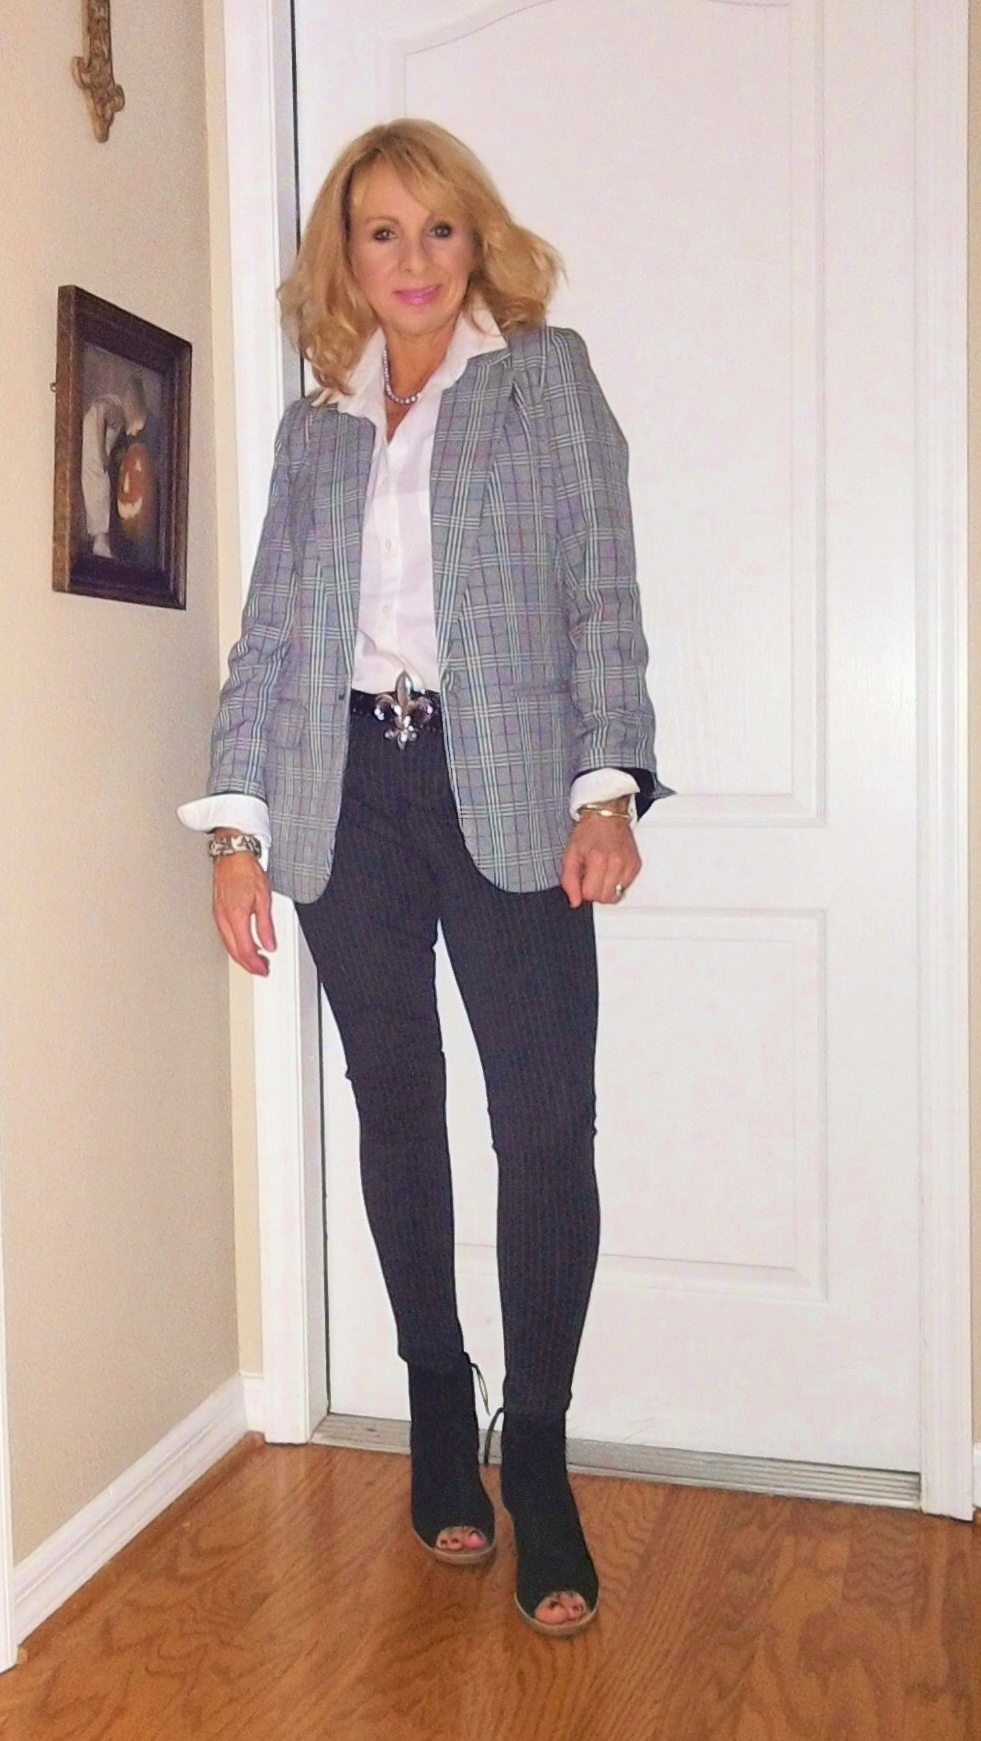 #plaidblazer